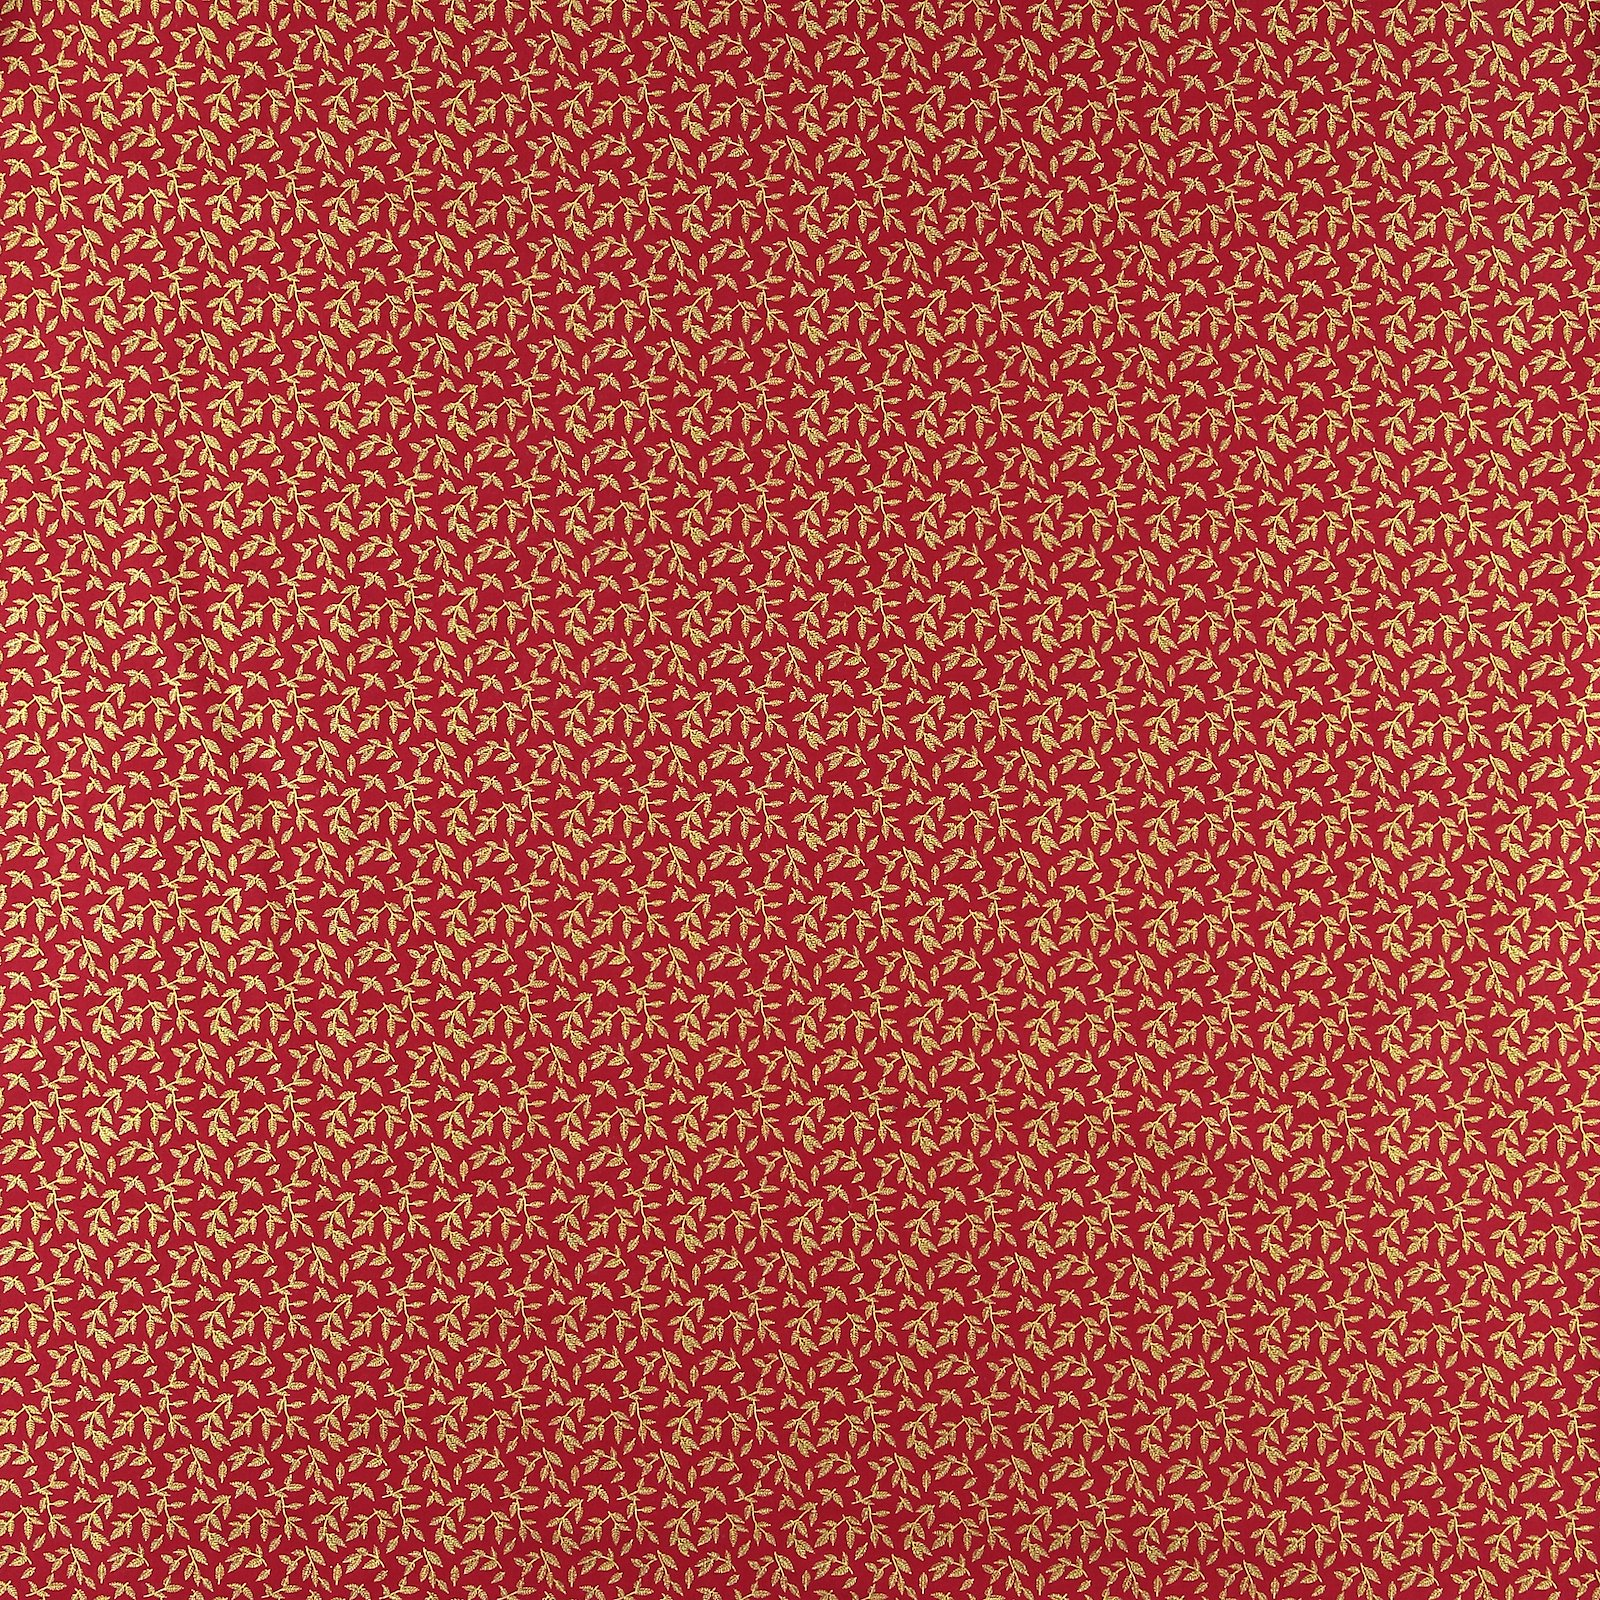 Cotton red with gold leaves 852325_pack_sp